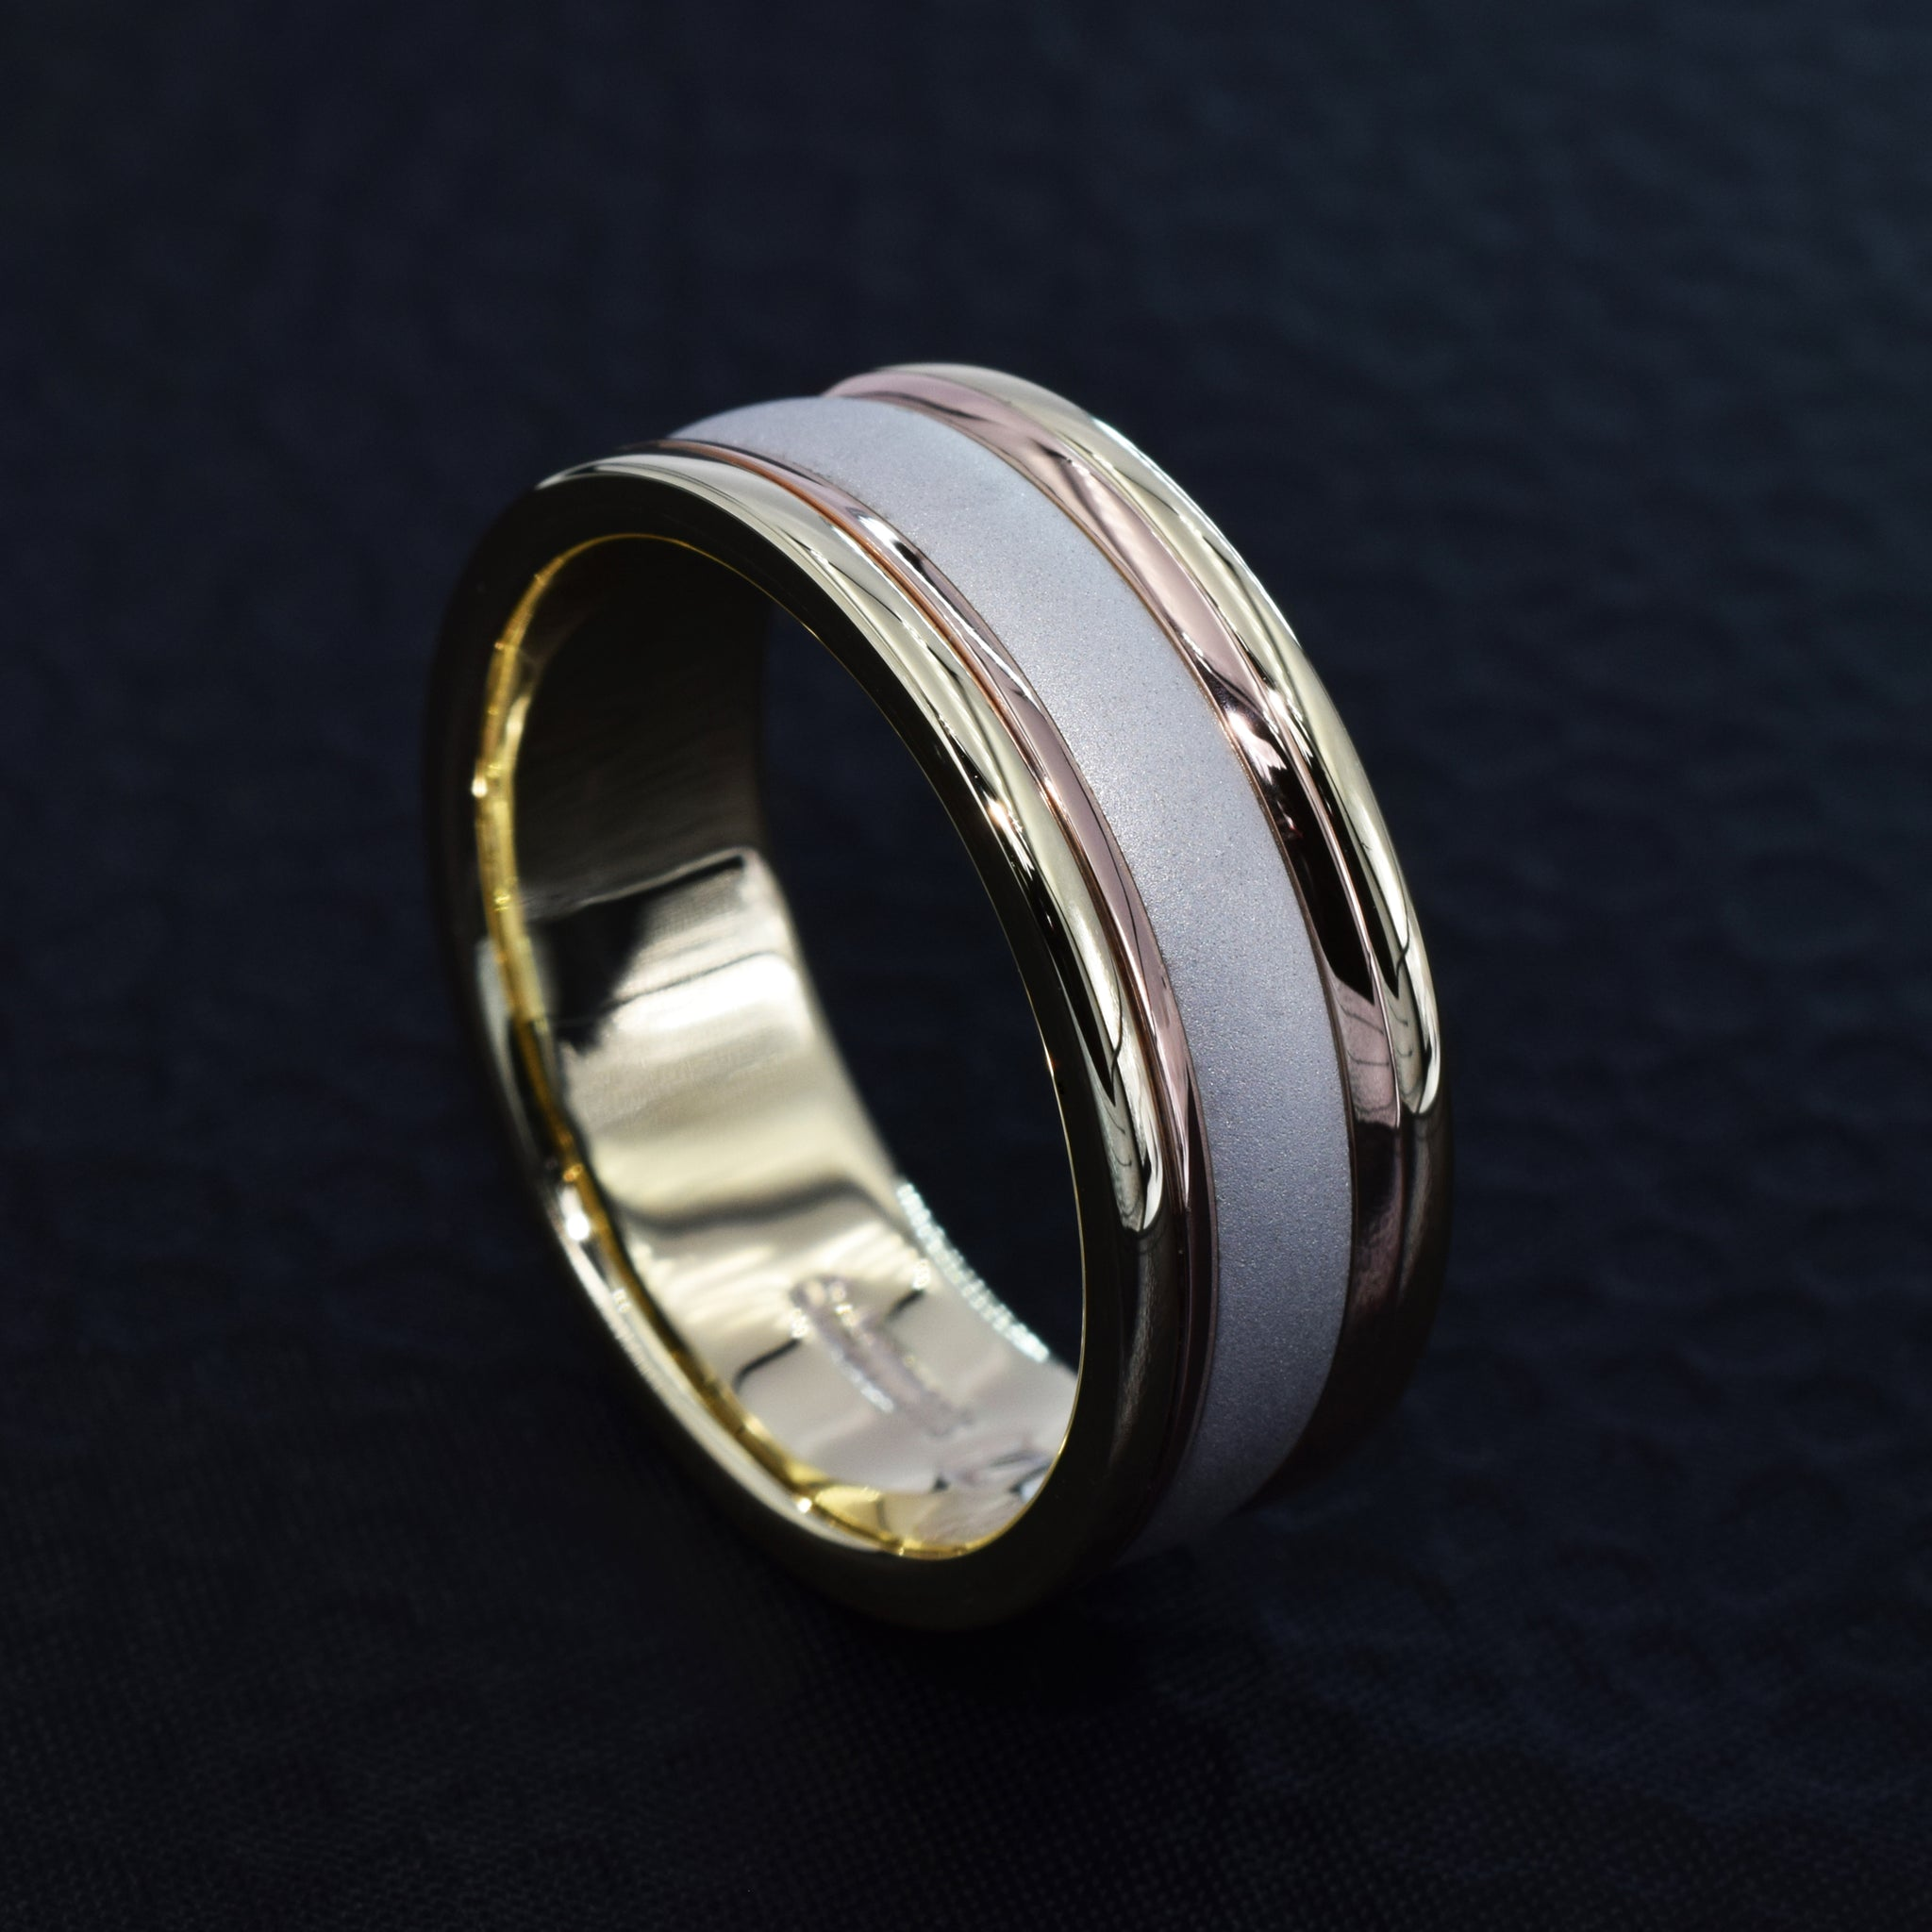 Wide yellow and white gold polished and matt band